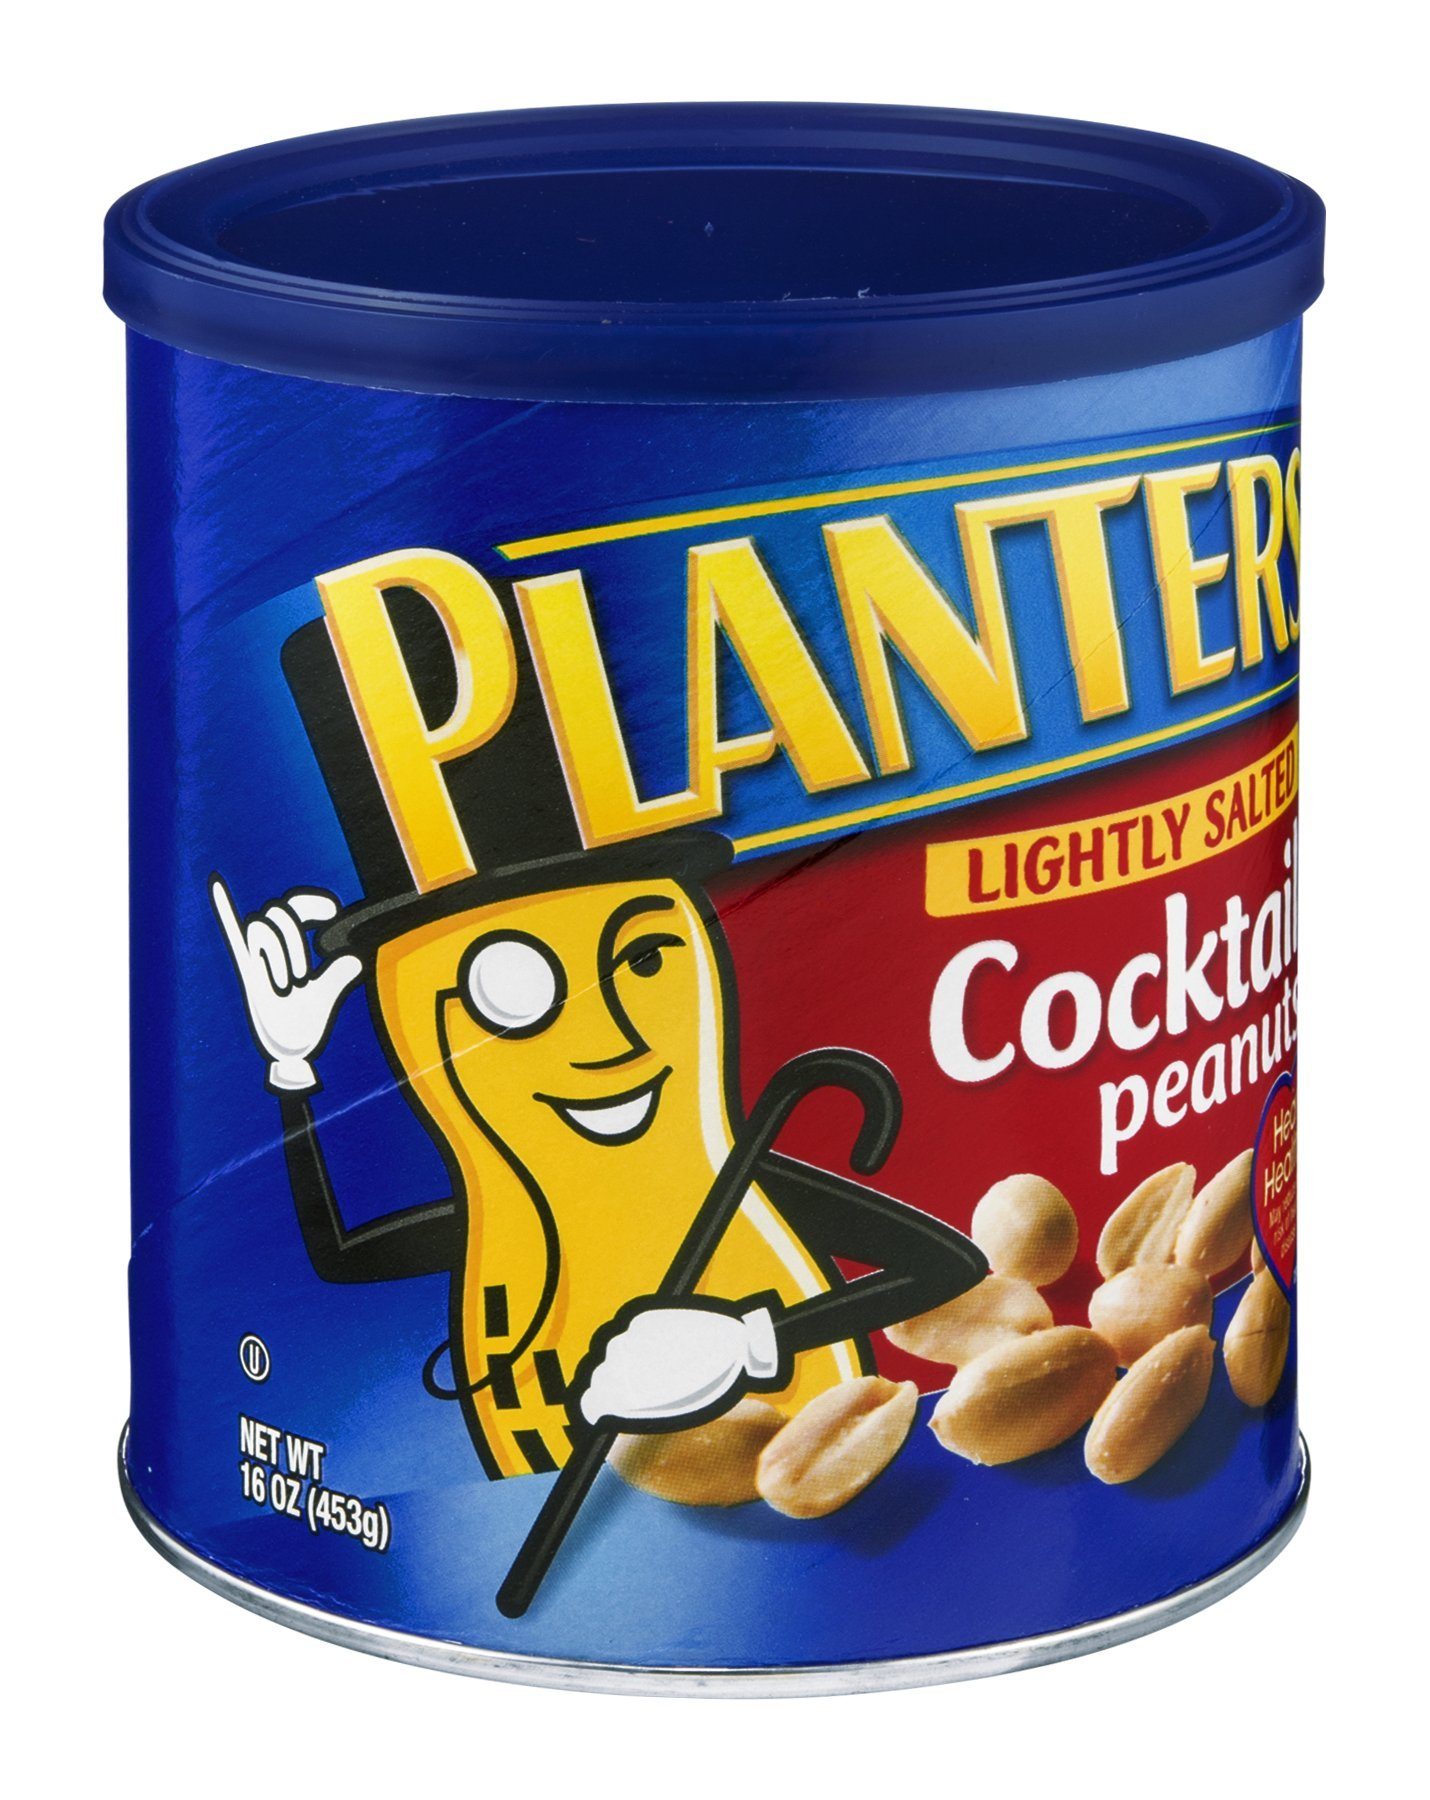 Planters Lightly Salted Cocktail Peanuts 16 OZ (Pack of 24)